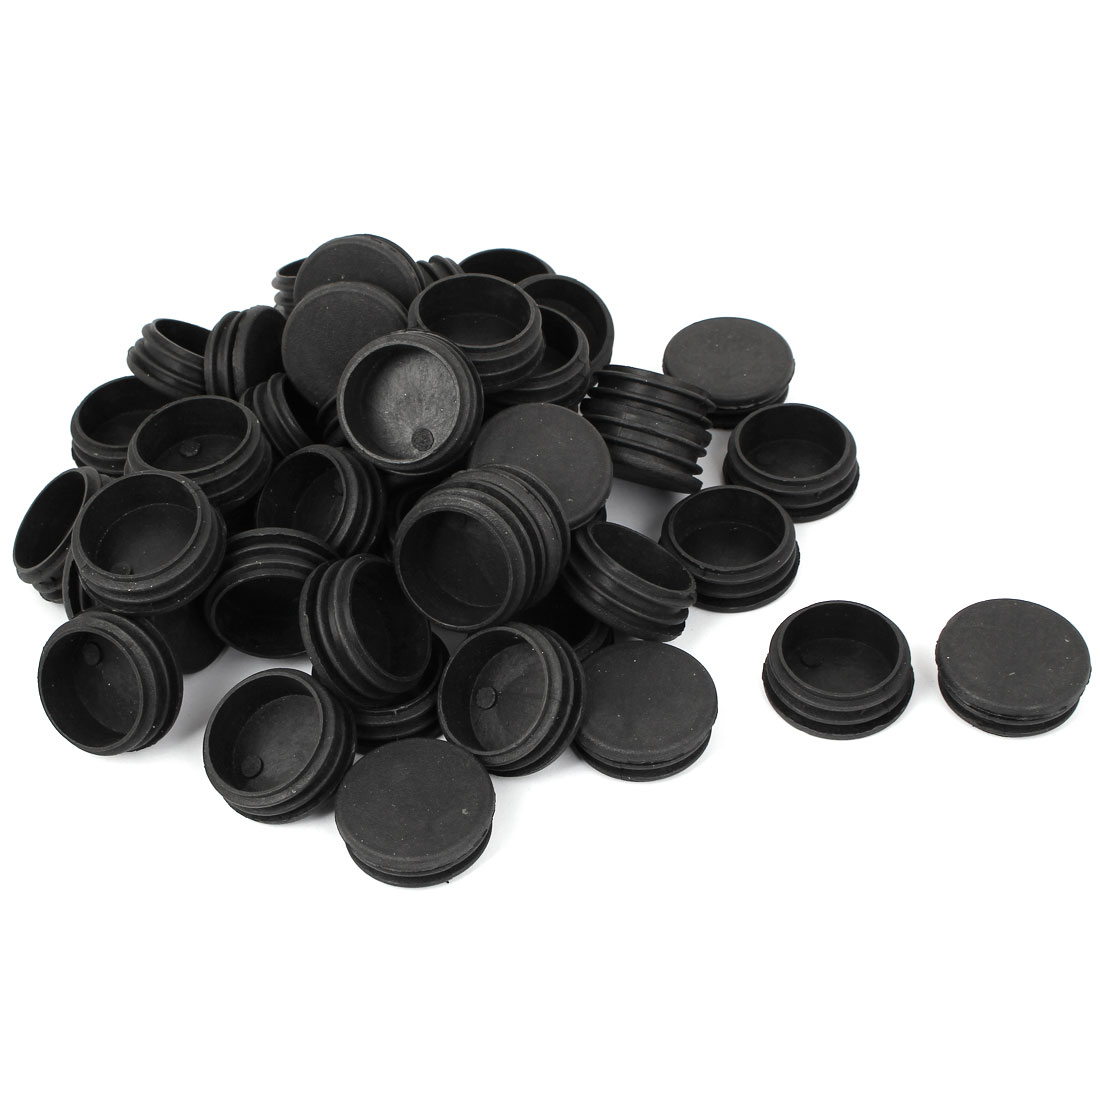 38mm Diameter Plastic Cap Round Ribbed Tube Insert 100 Pcs for Chair Table Legs